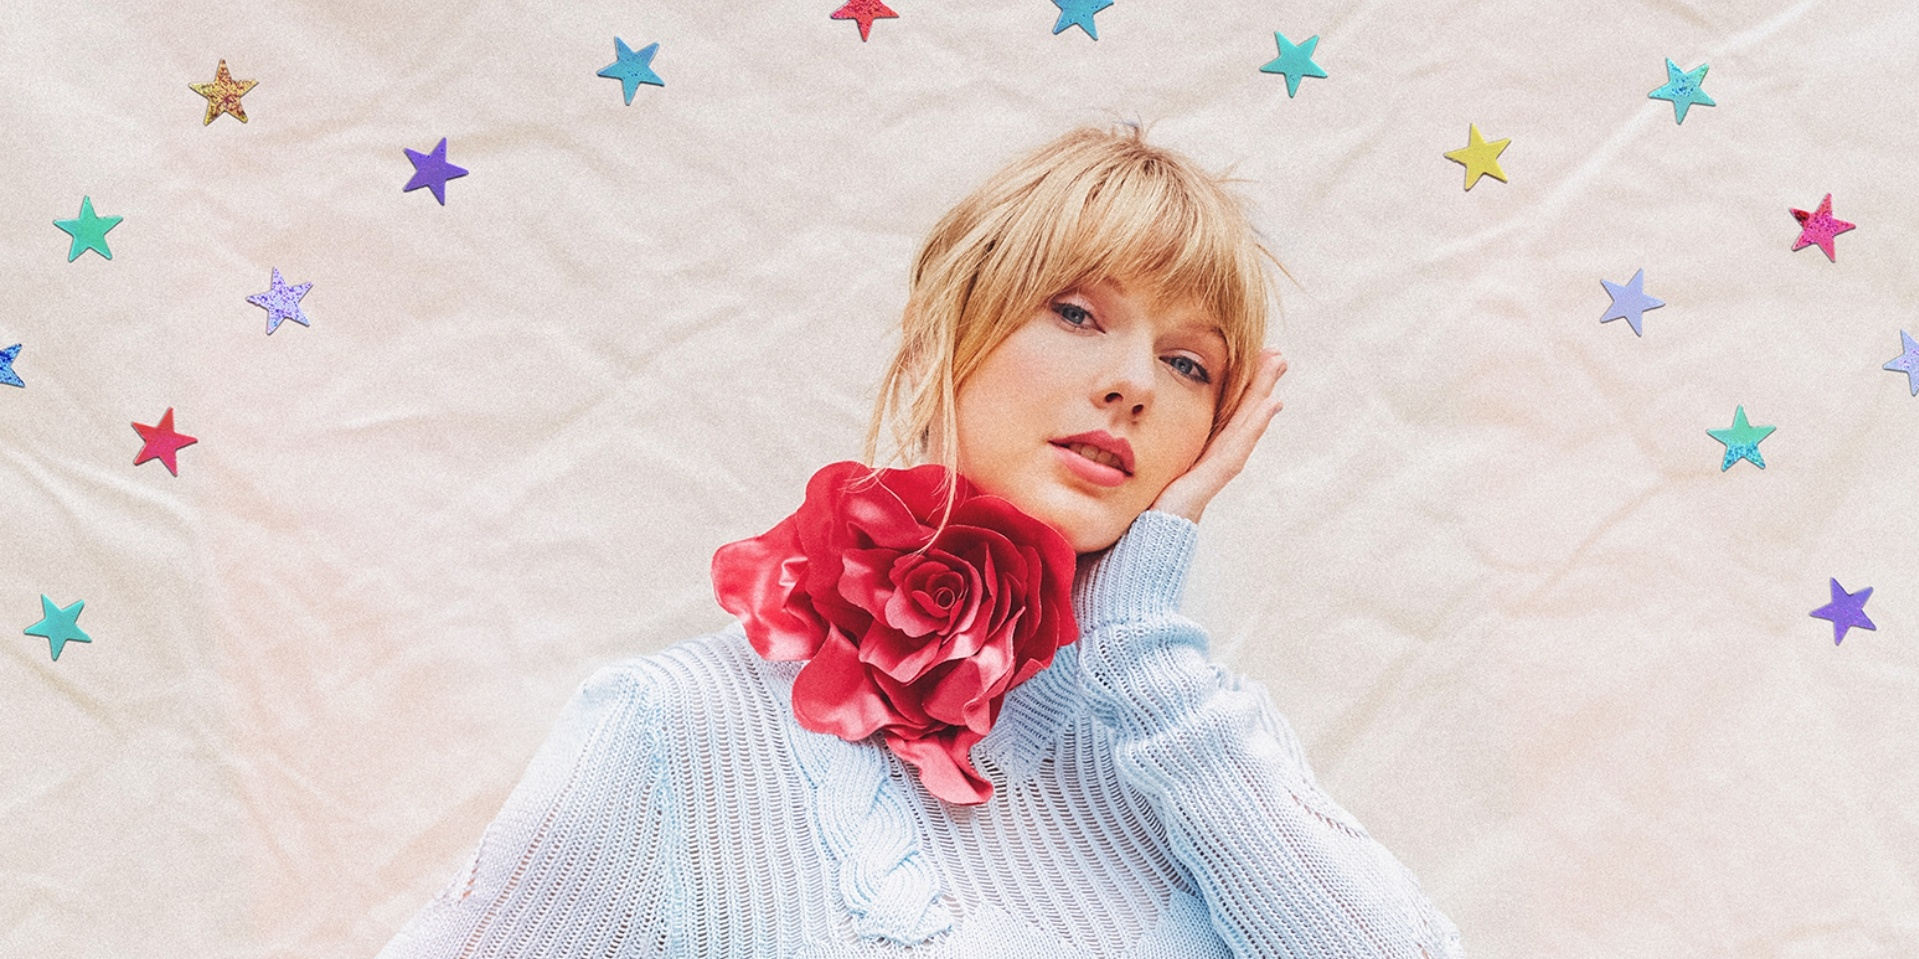 Taylor Swift shares tracklist for Lover